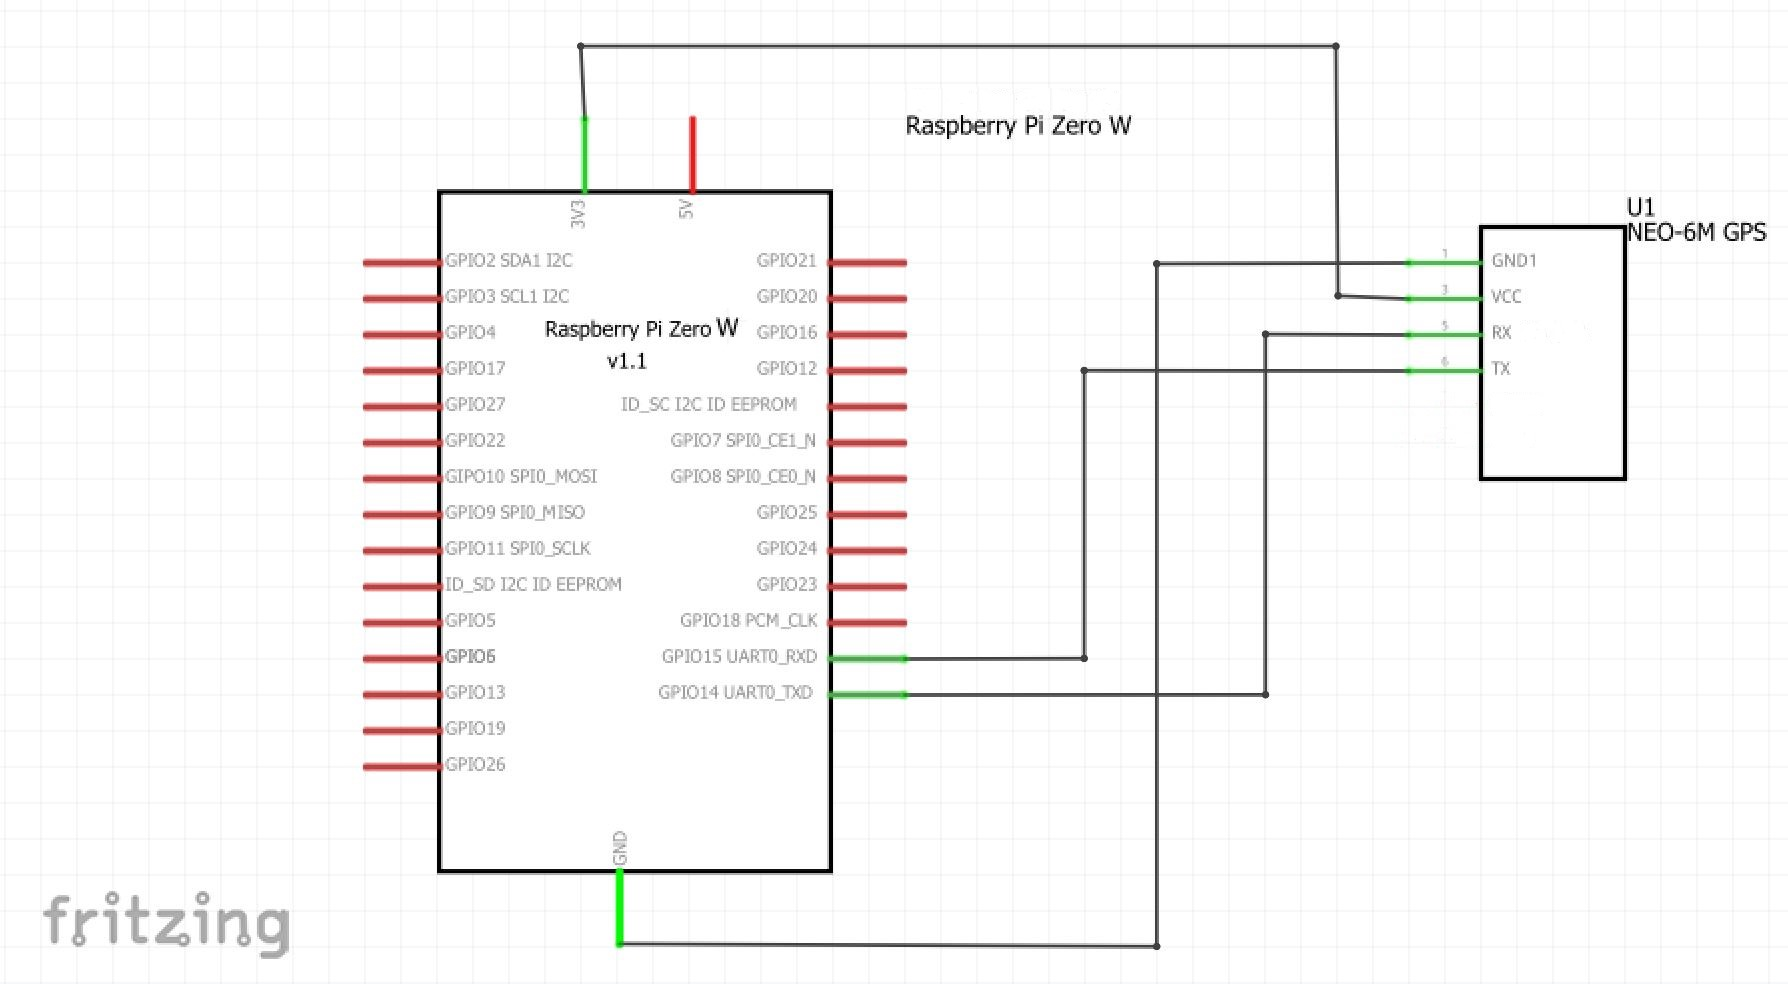 Simple Asset Tracking Schematic Diagram Circuit Software Download Gps Connections To Neo 6m Module Ras Pi Fldsaoo1ja